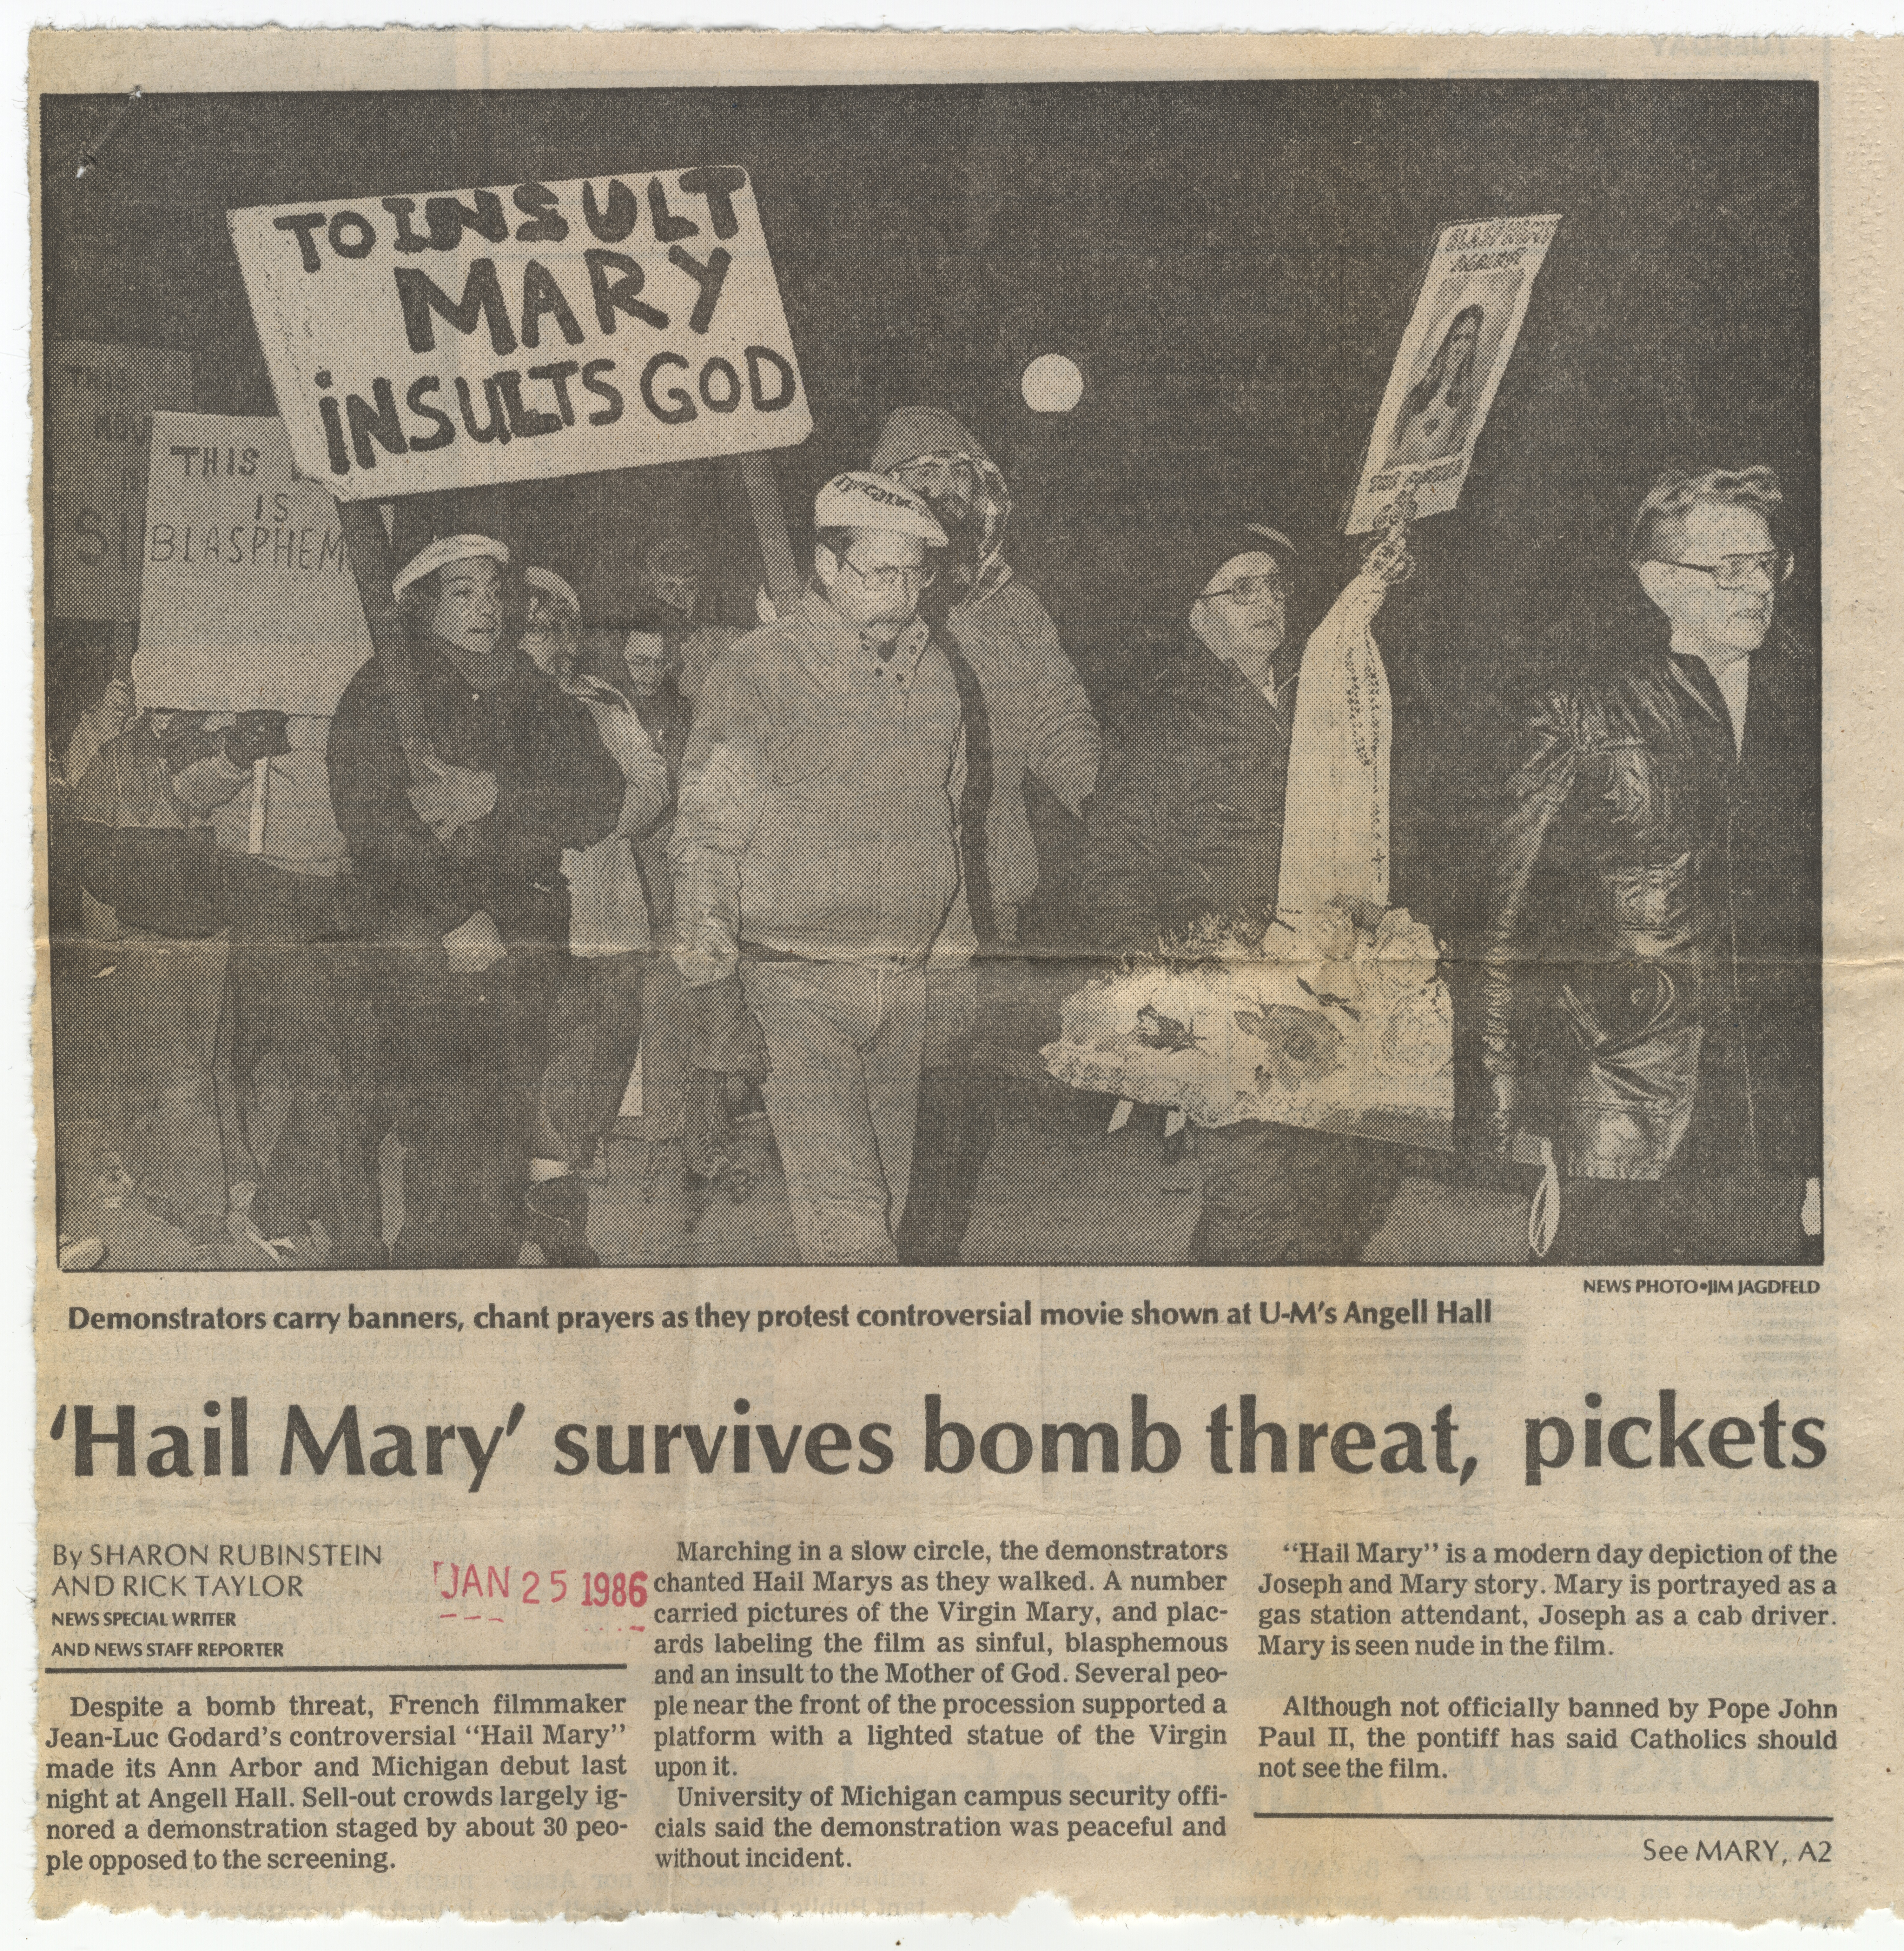 'Hail Mary' survives bomb threat, pickets image